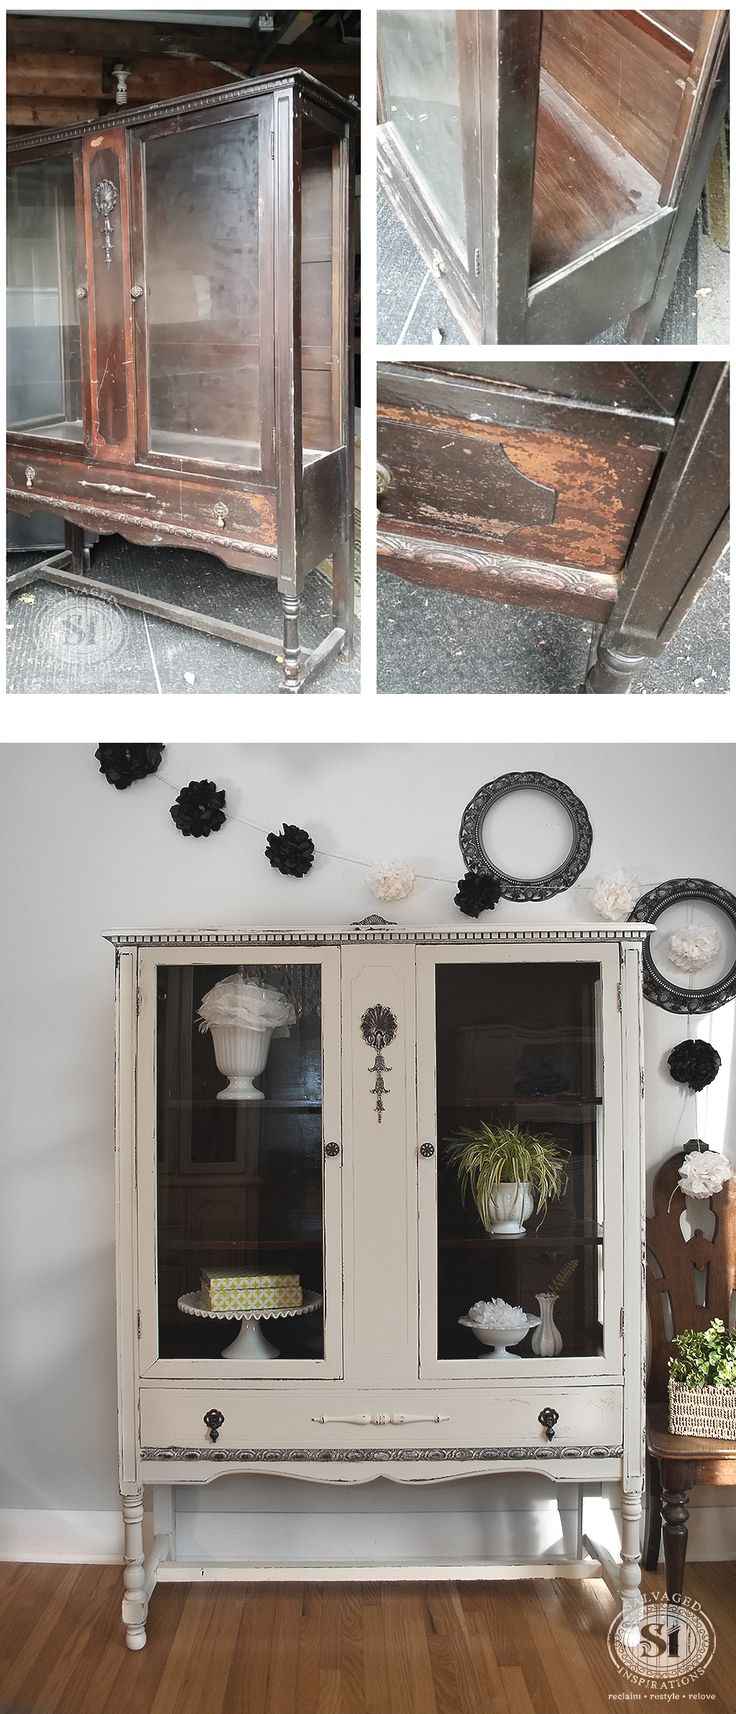 Here's a great before & after!!! I was over the moon happy when I found this vintage china cabinet with the glass on all four sides! It need some TLC but the final results was well worth it! #GeneralFinishes #ChalkStylePaint #Review